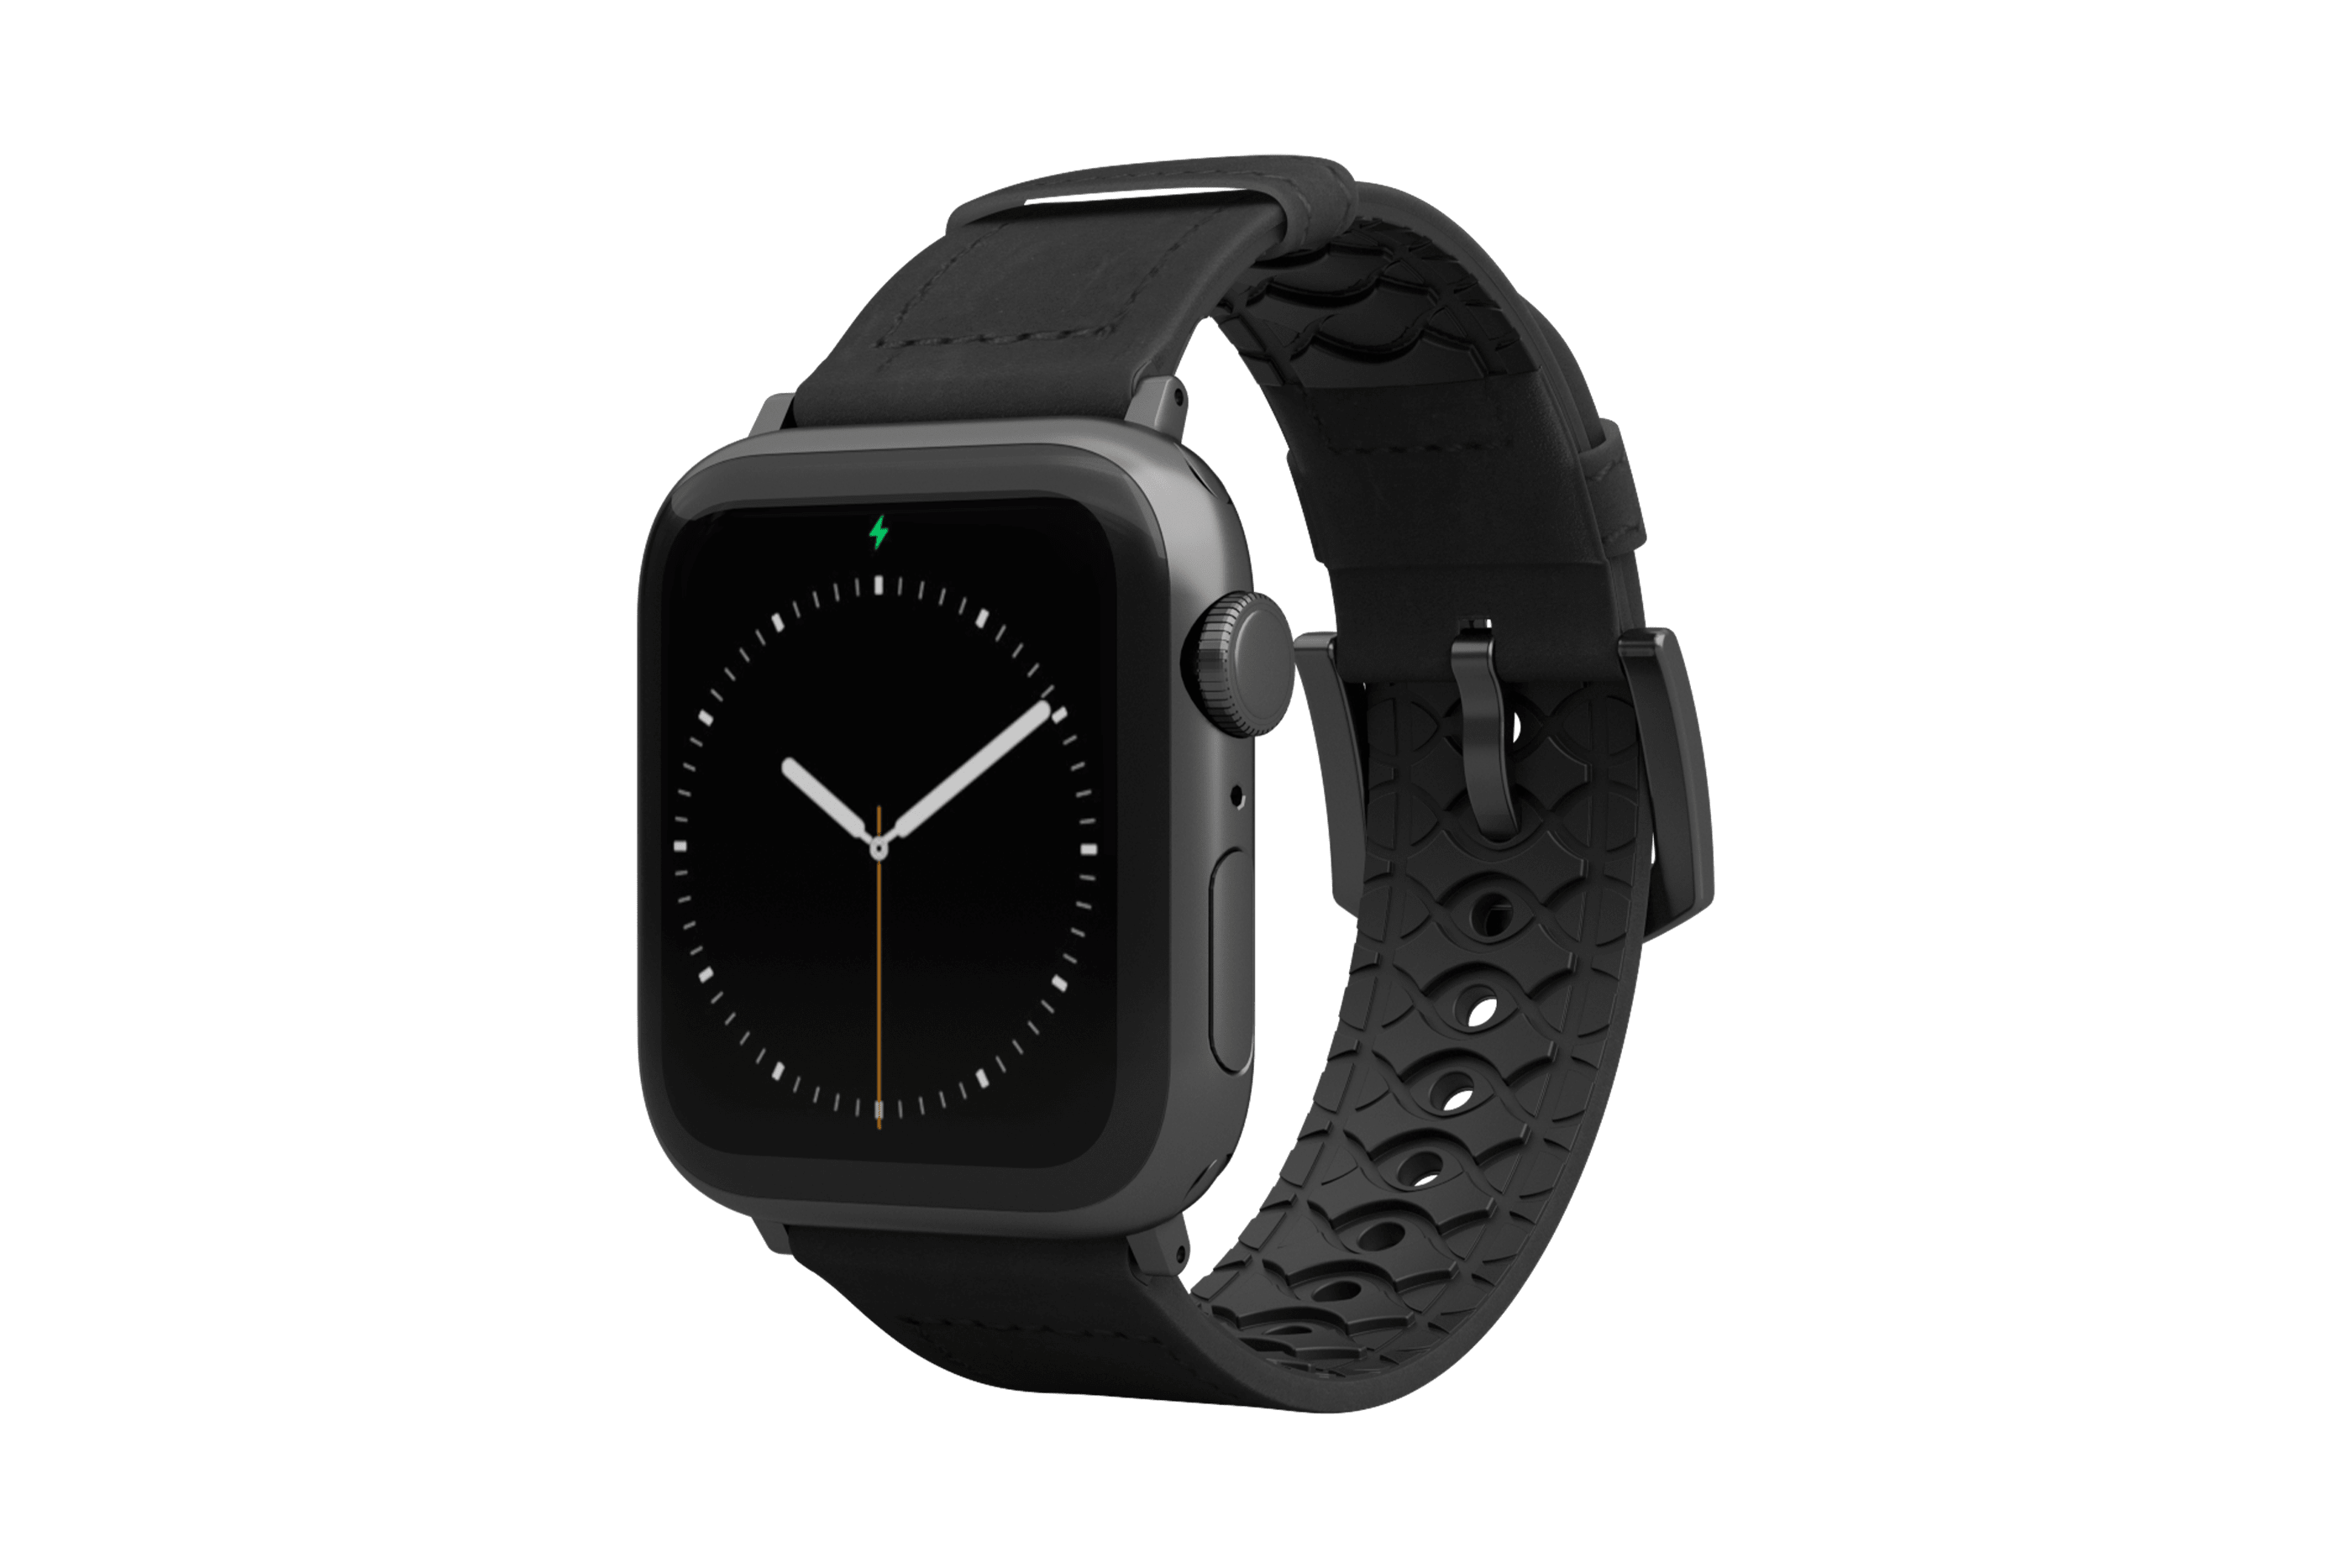 Vulcan Obsidian Black Leather Apple Watch Band with gray hardware viewed front on